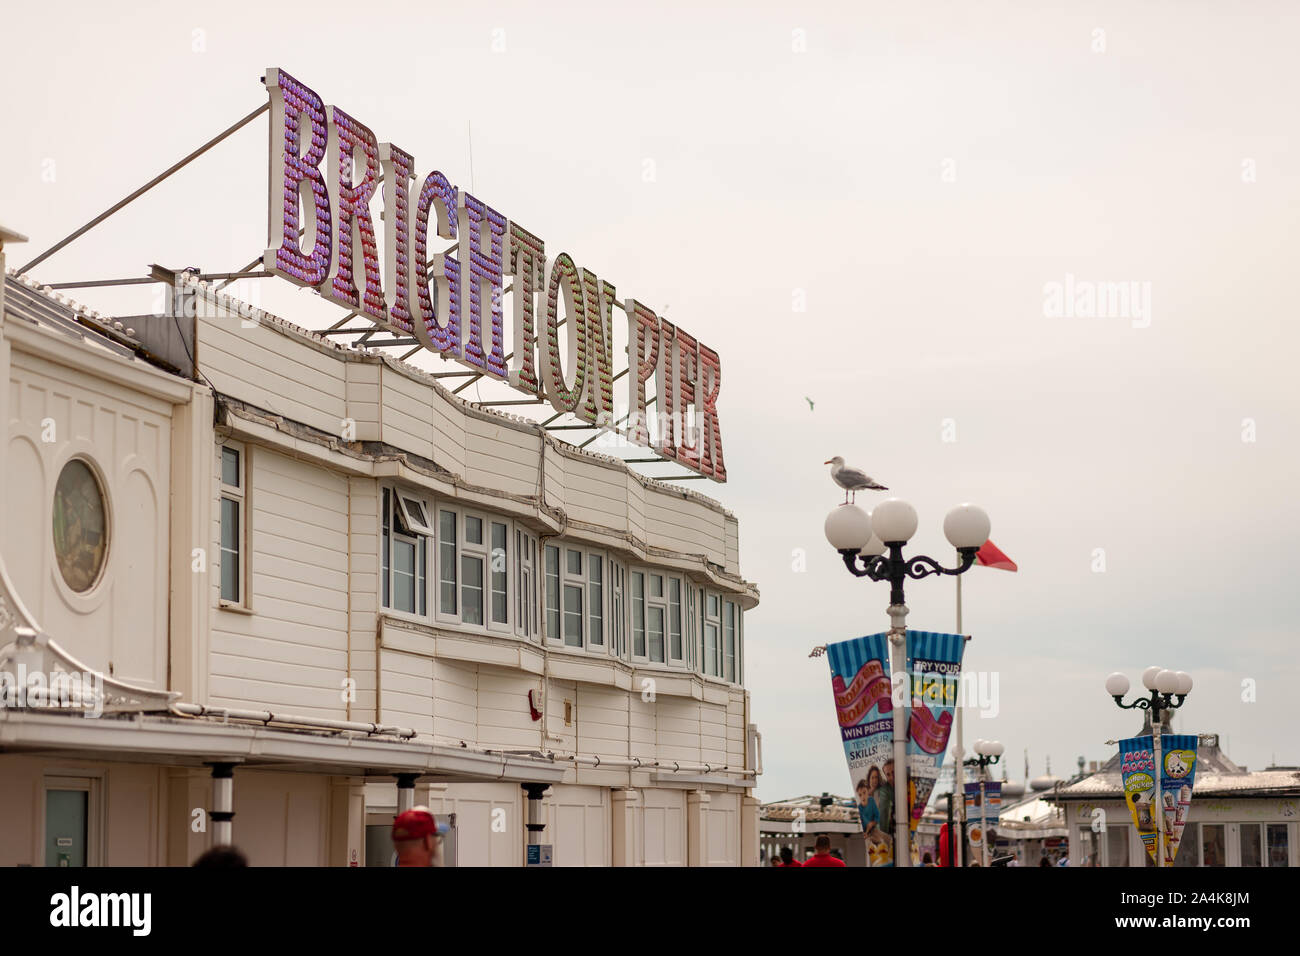 Colour landscape images of Brighton Palace Pier, in Brighton, East Sussex, England. Stock Photo